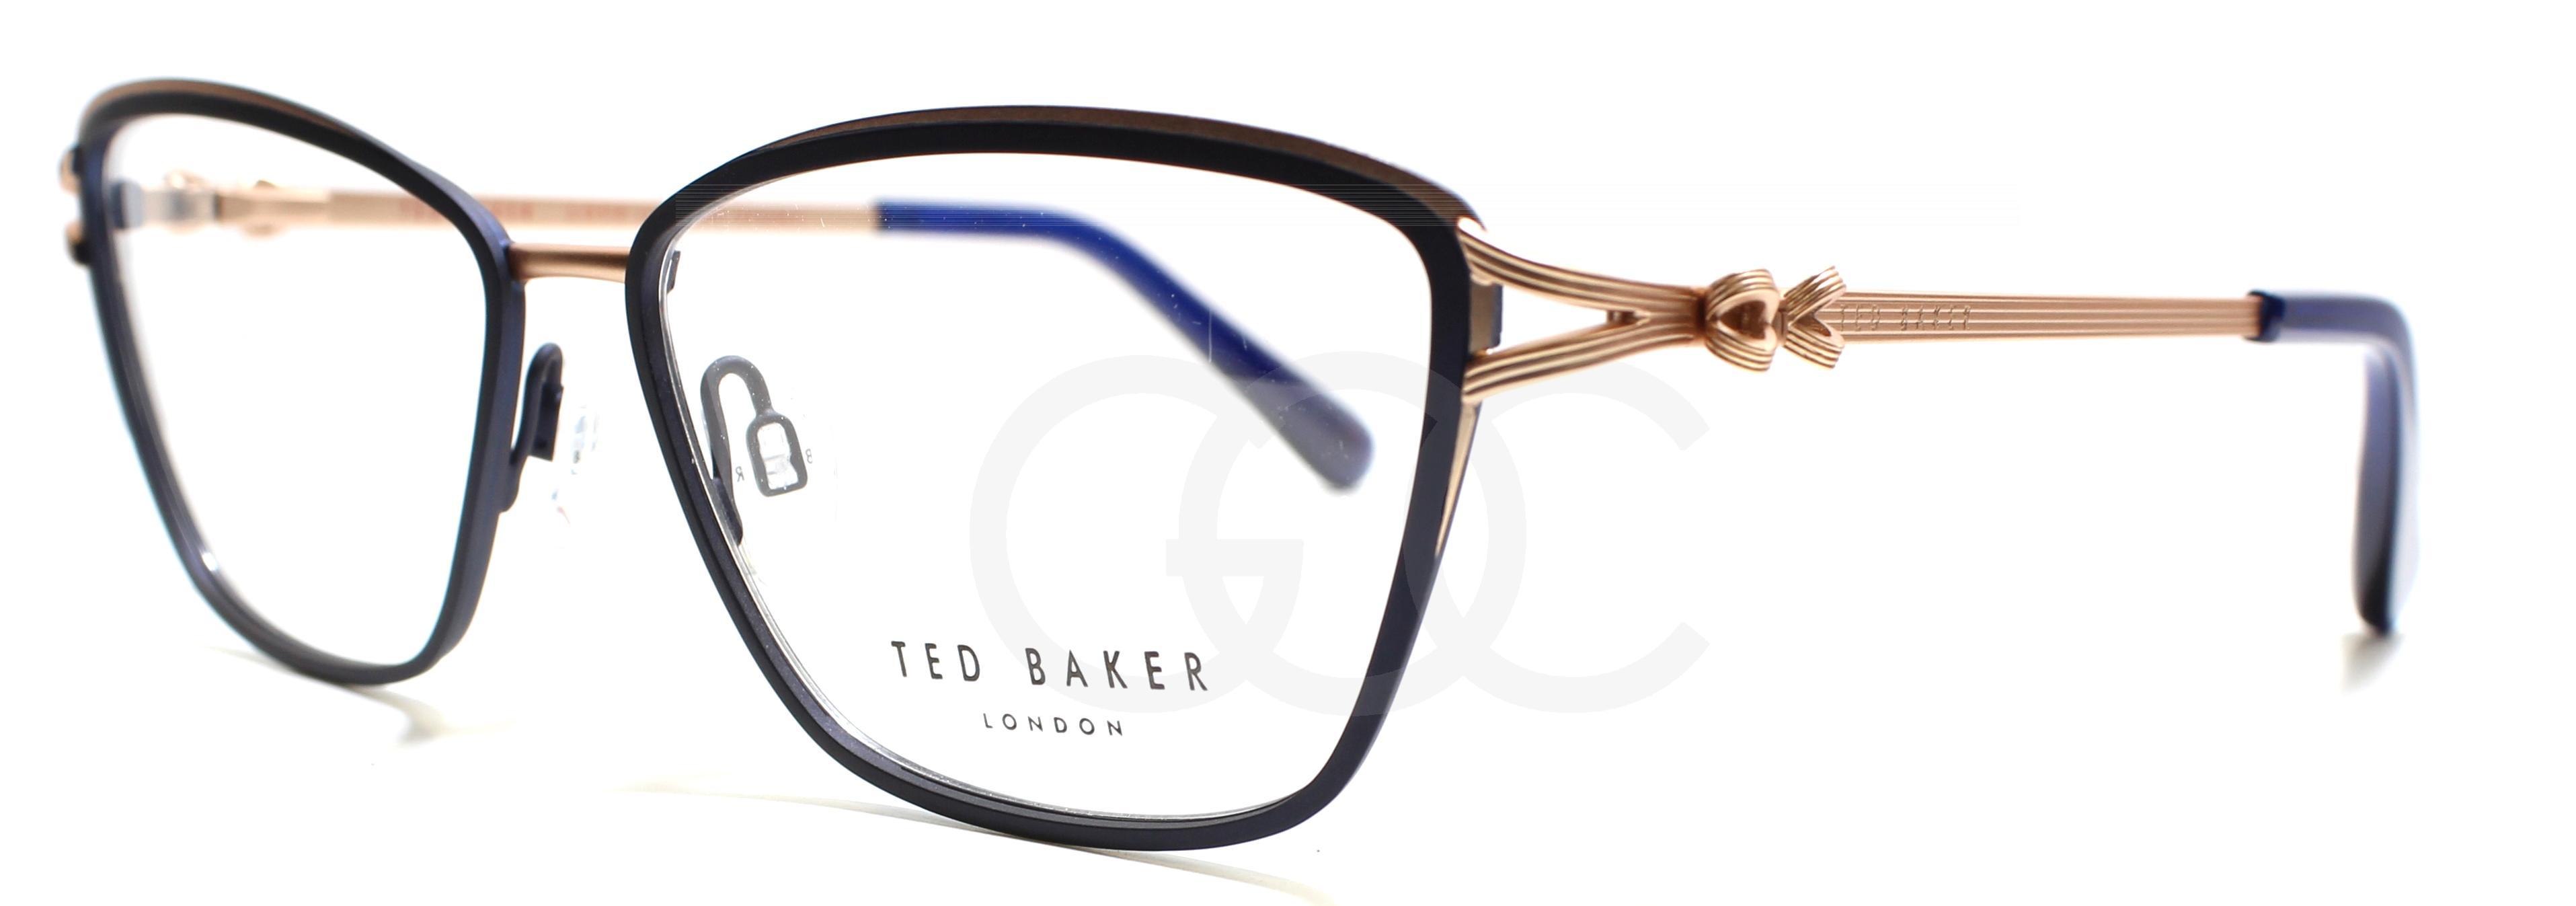 Ted Baker tula 2245 682